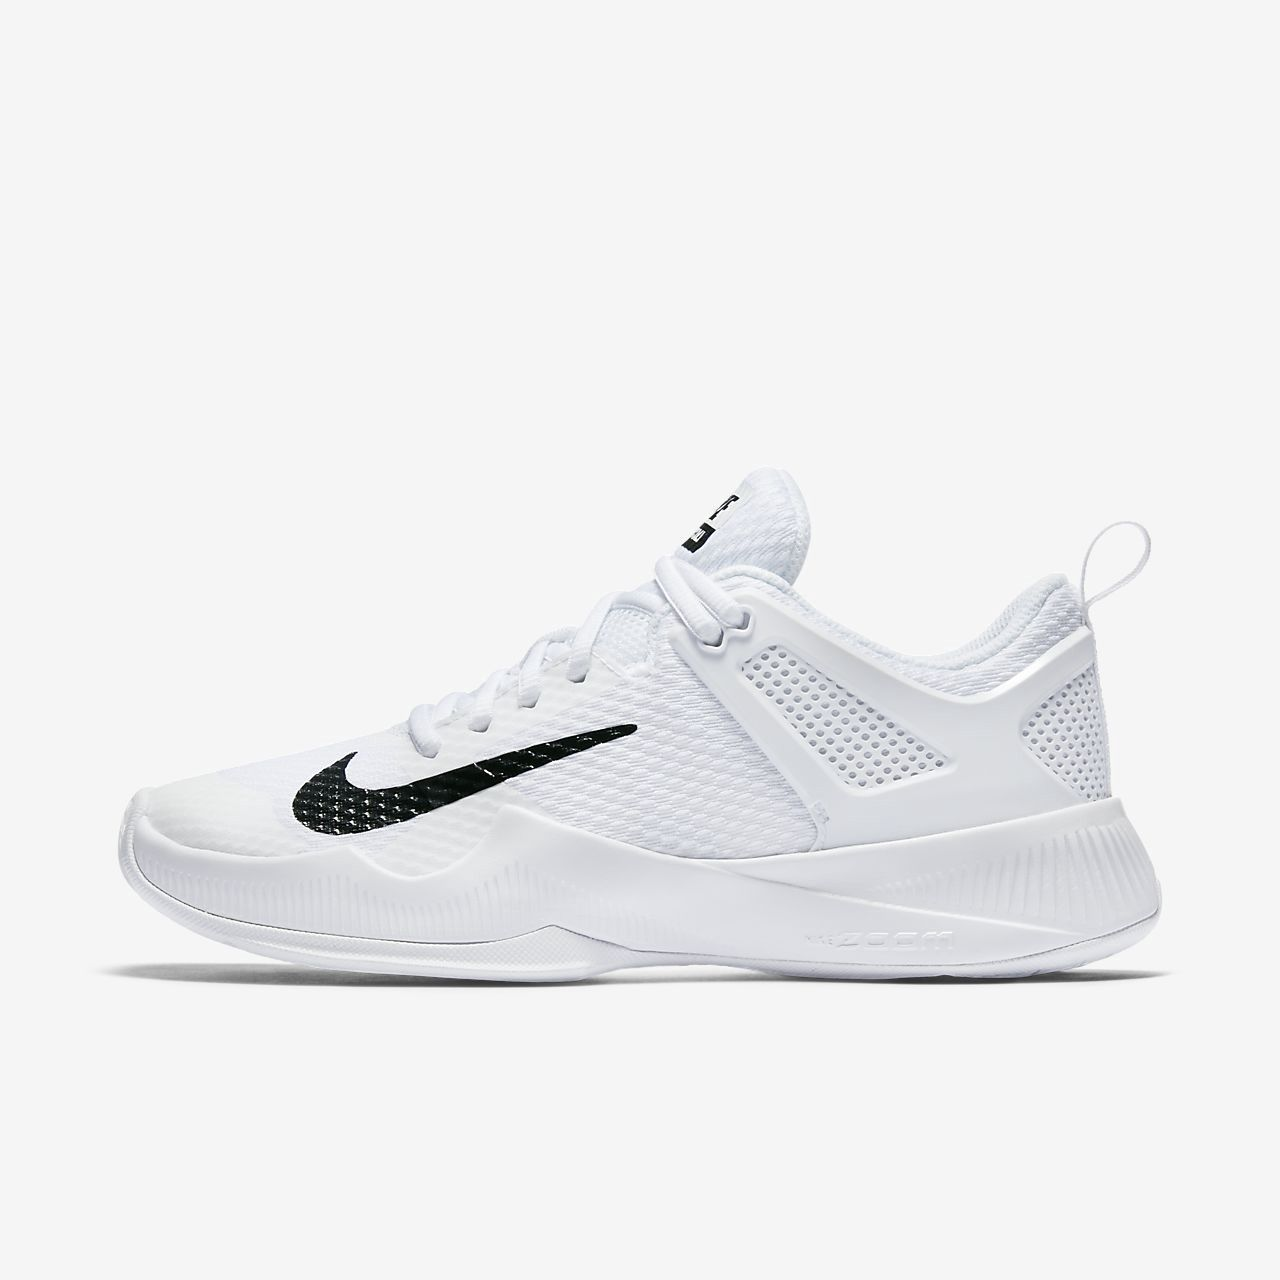 Nike Air Zoom Hyperace Women S Volleyball Shoe 15 Nike Volleyball Shoes Volleyball Shoes Nike Volleyball